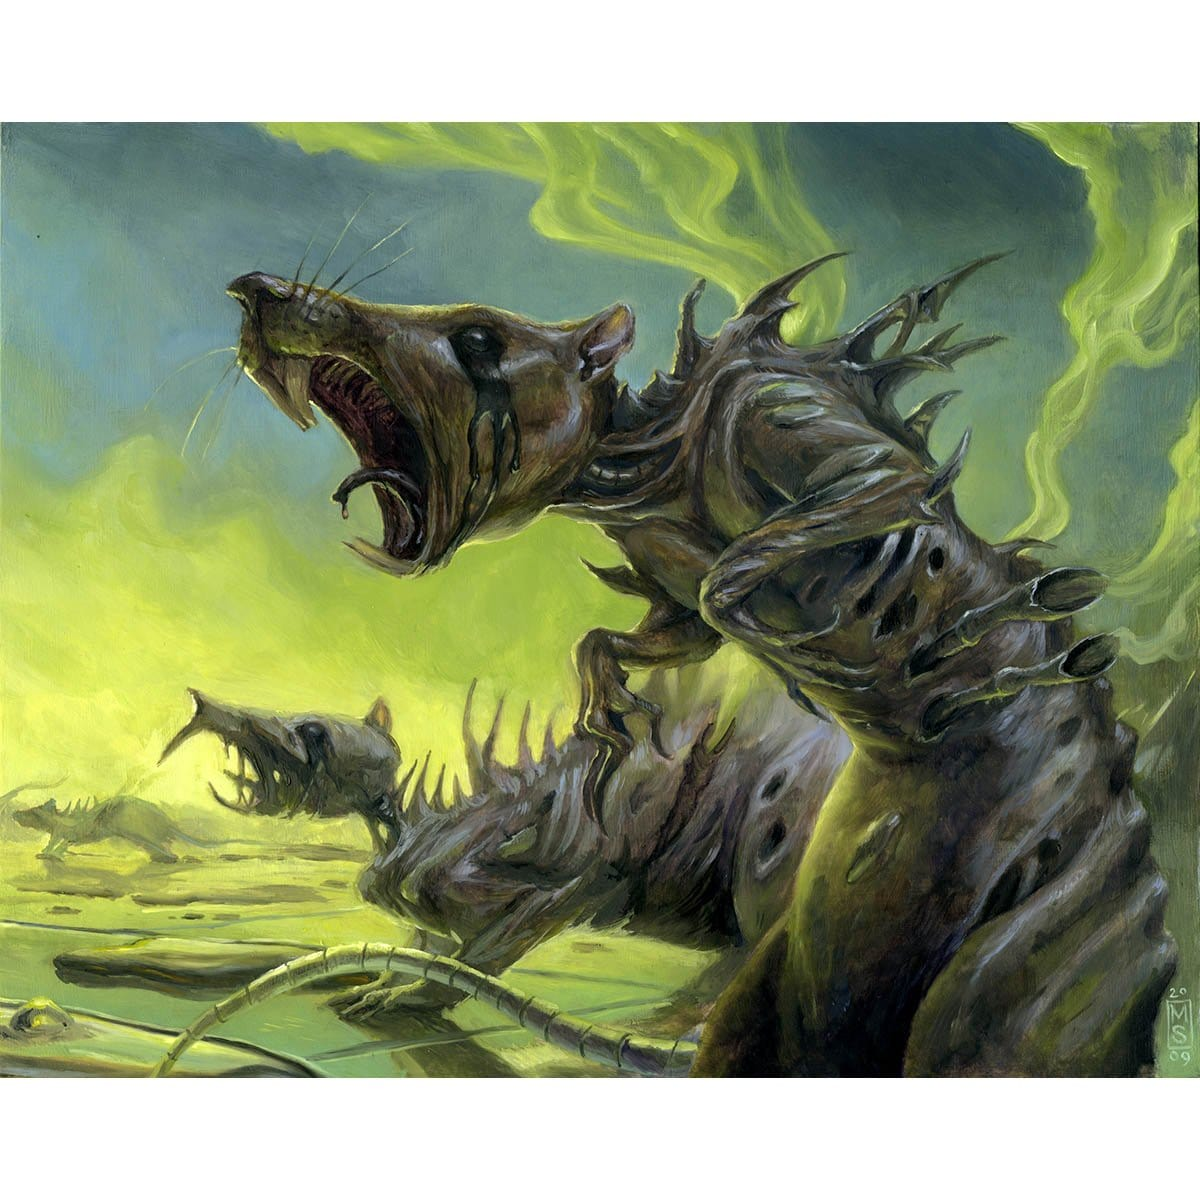 Ichor Rats Print - Print - Original Magic Art - Accessories for Magic the Gathering and other card games